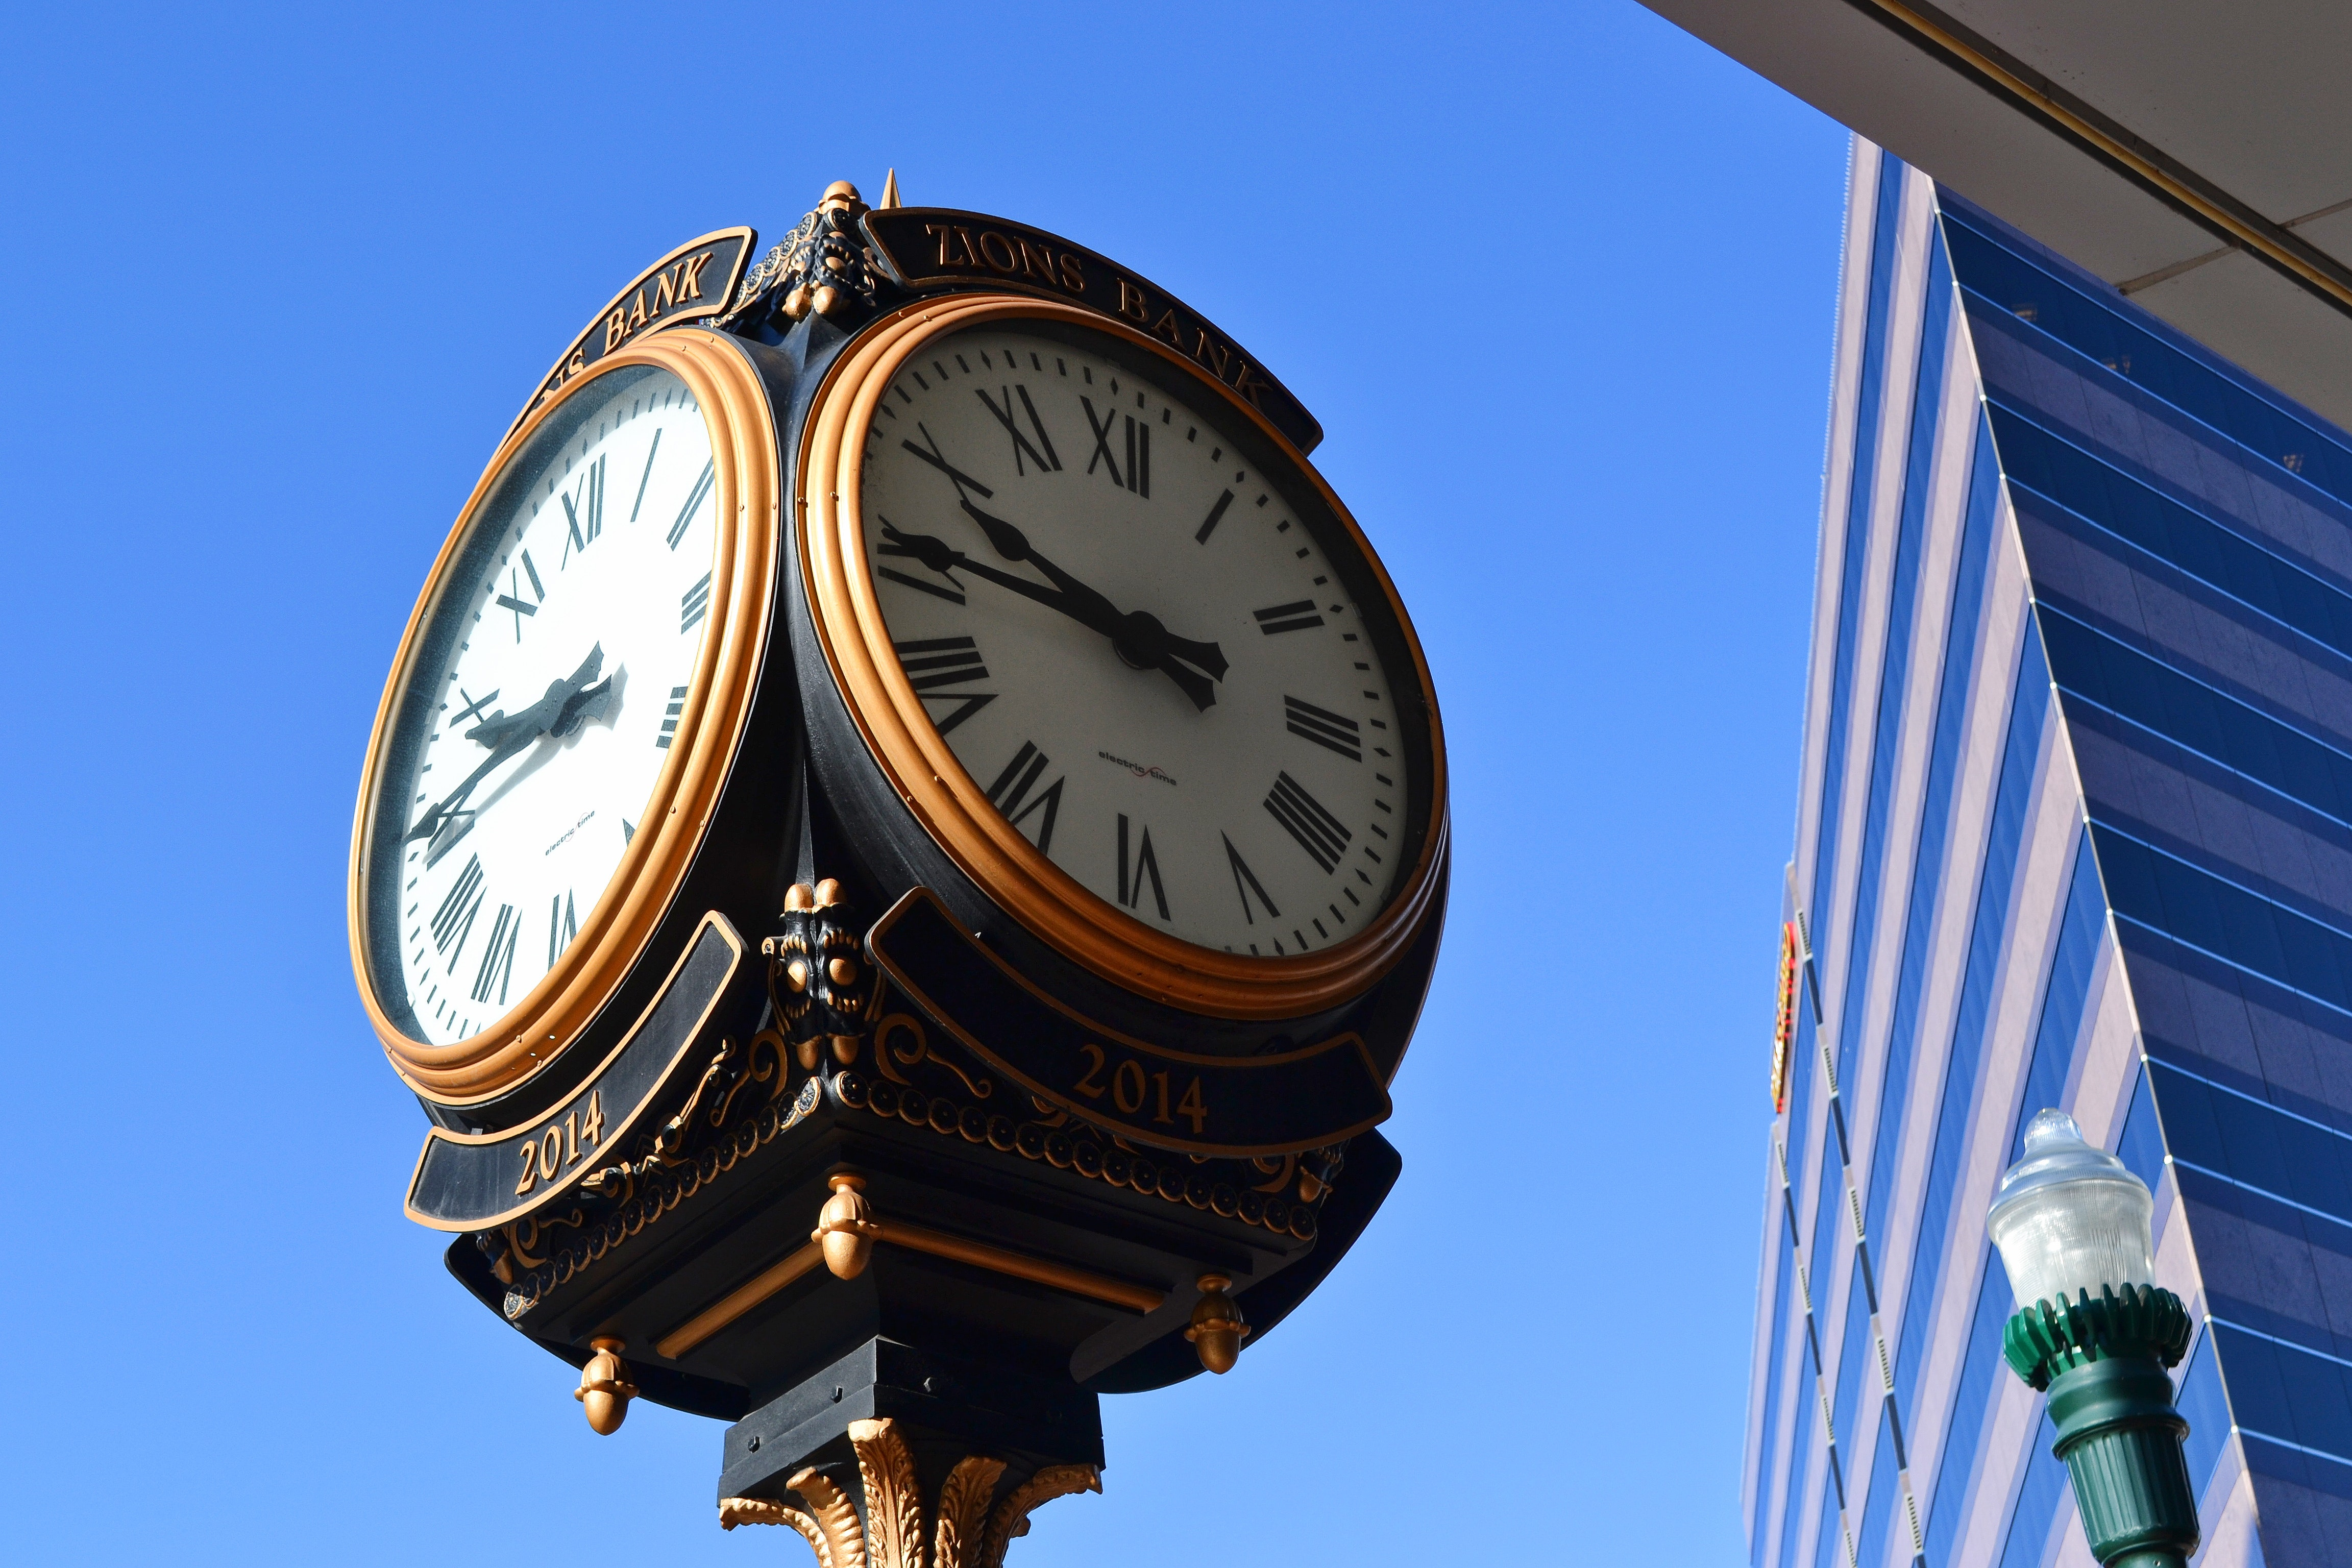 Old forged street clock under a bright blue sky photo